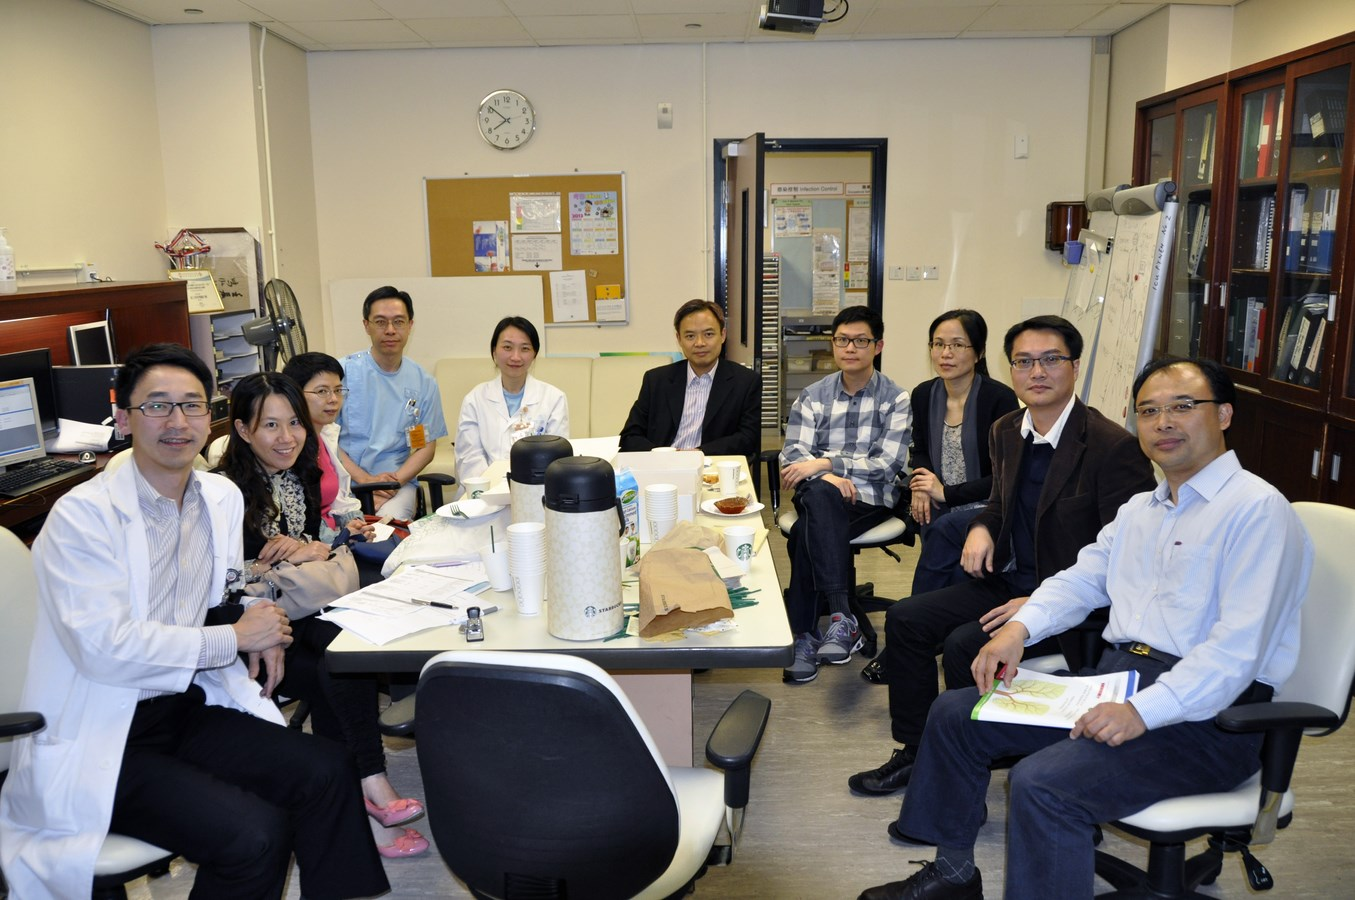 15 April 2013 - The 1st Website Working Group Meeting (From Left to Right: Drs Angus Lo, Jenny Ngai, Jane Cheung, Arthur Lau, Grace Lam, YC Yeung, HN Tse, KY Wong, WL Law, and CK Ng)